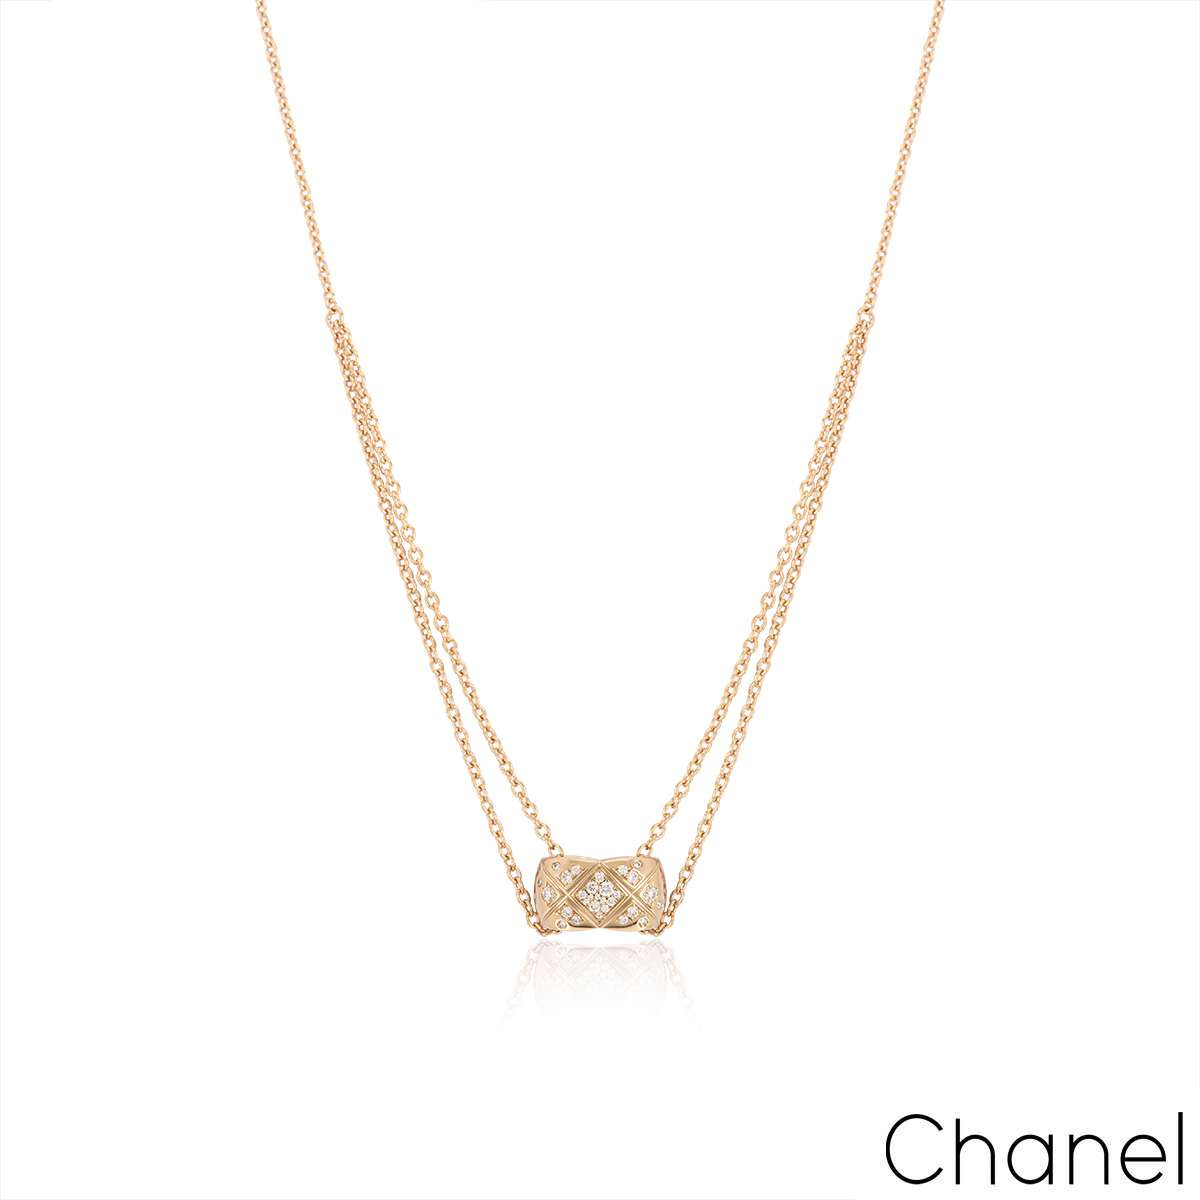 Chanel Beige / Rose Gold Diamond Coco Crush Necklace J11359